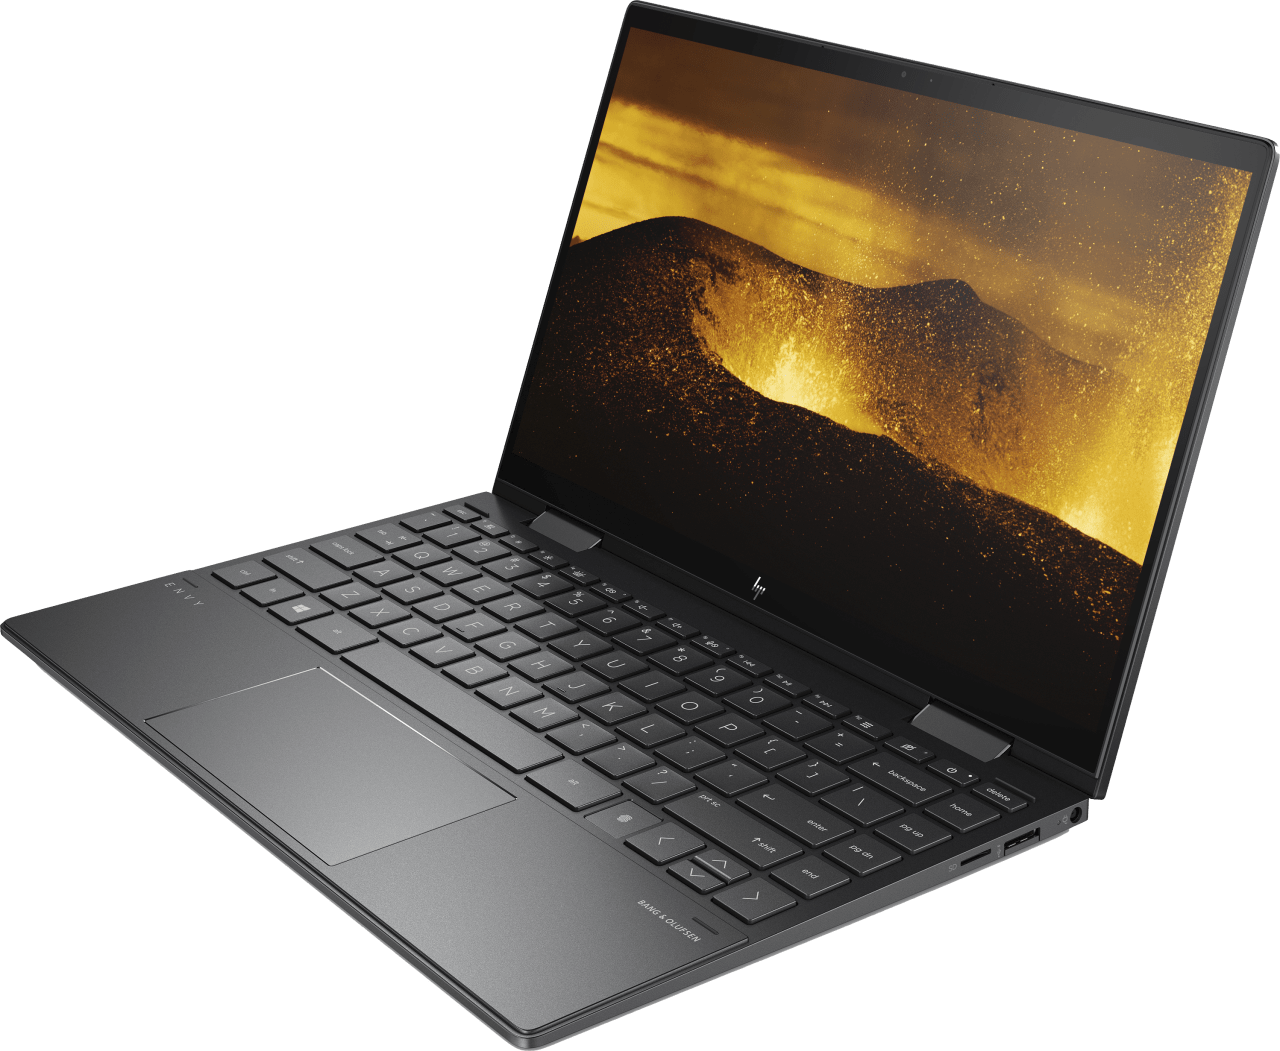 Nightfall Black HP Envy x360 13-ay0257ng.4